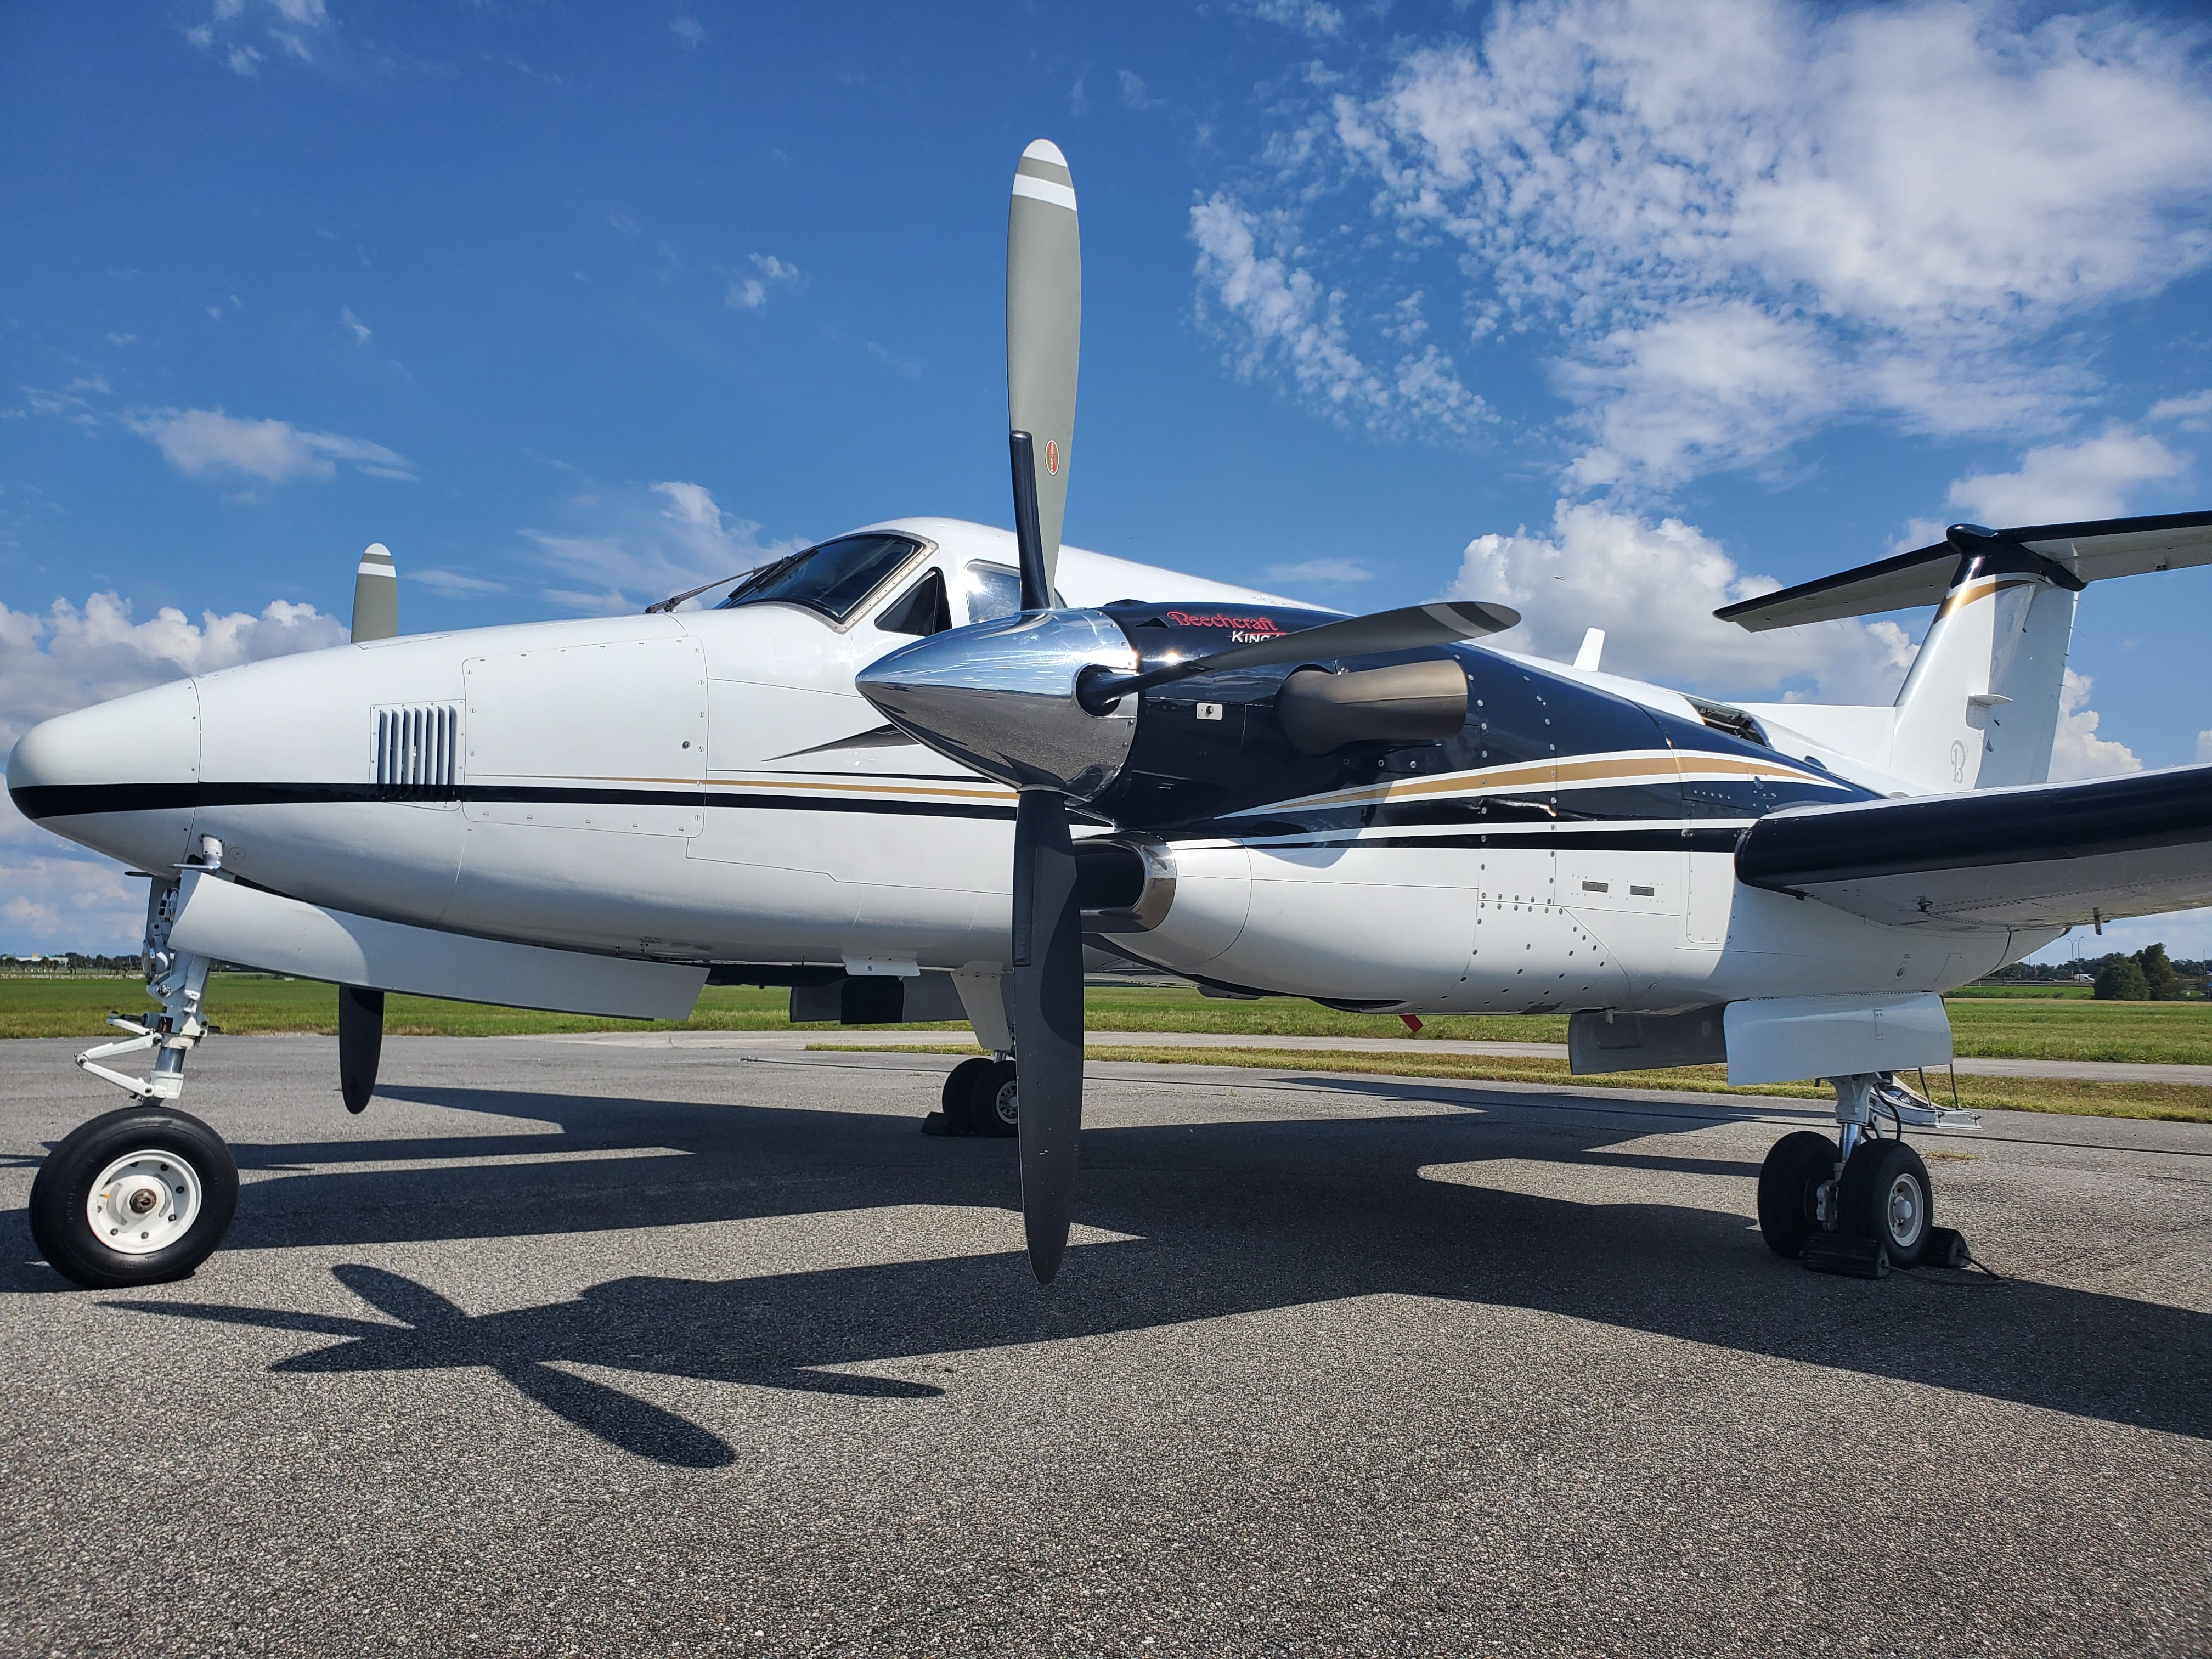 Aircraft Listing - King Air 350 listed for sale